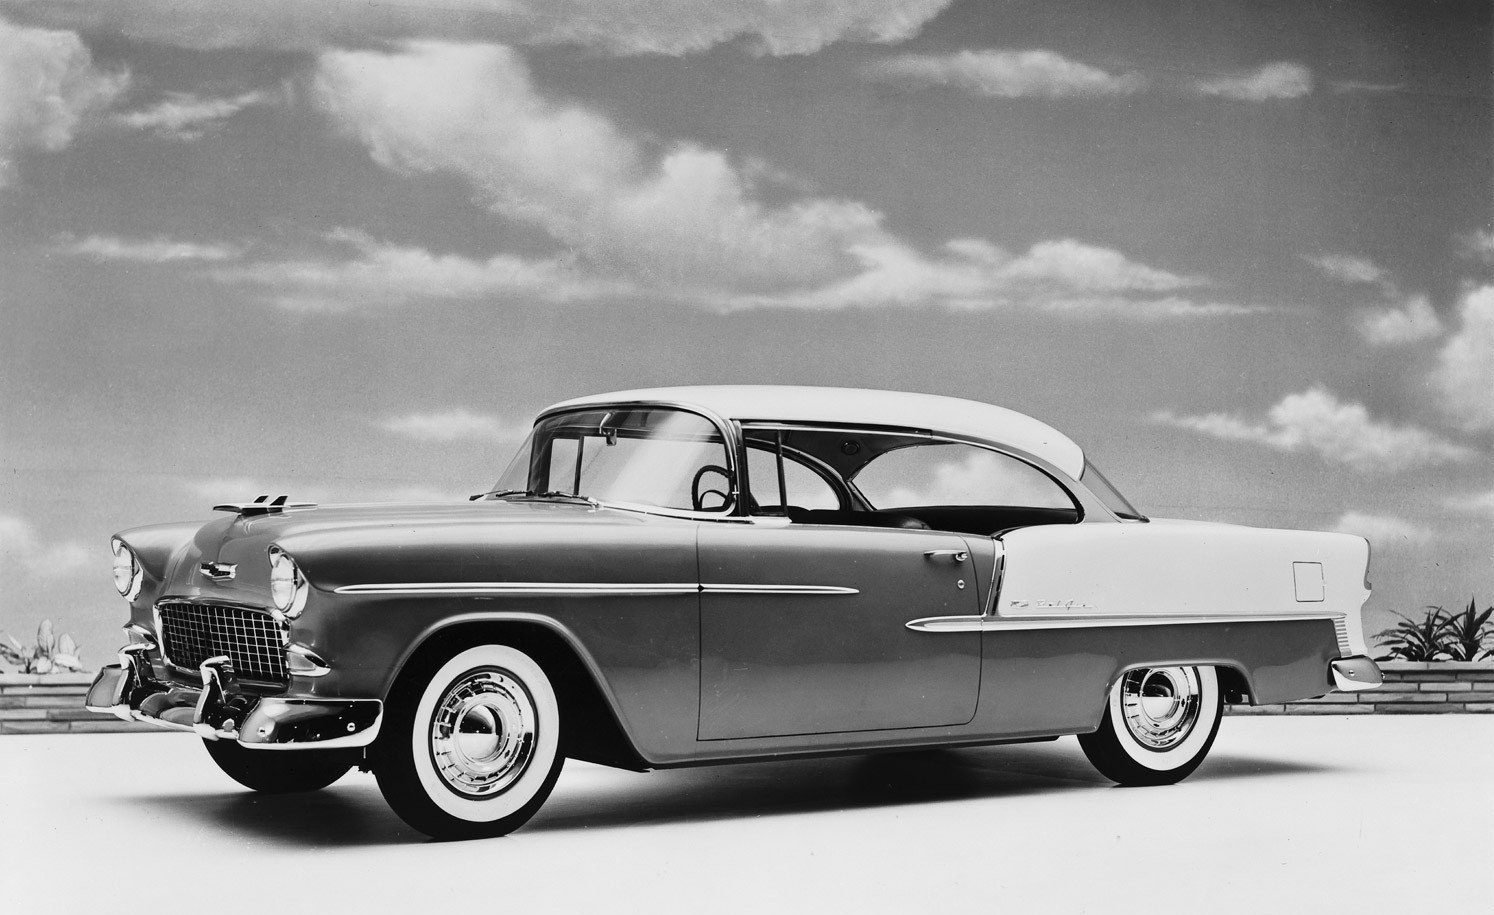 1955-chevrolet-bel-air-sport-coupe-50000000th-car-by-gm.jpg